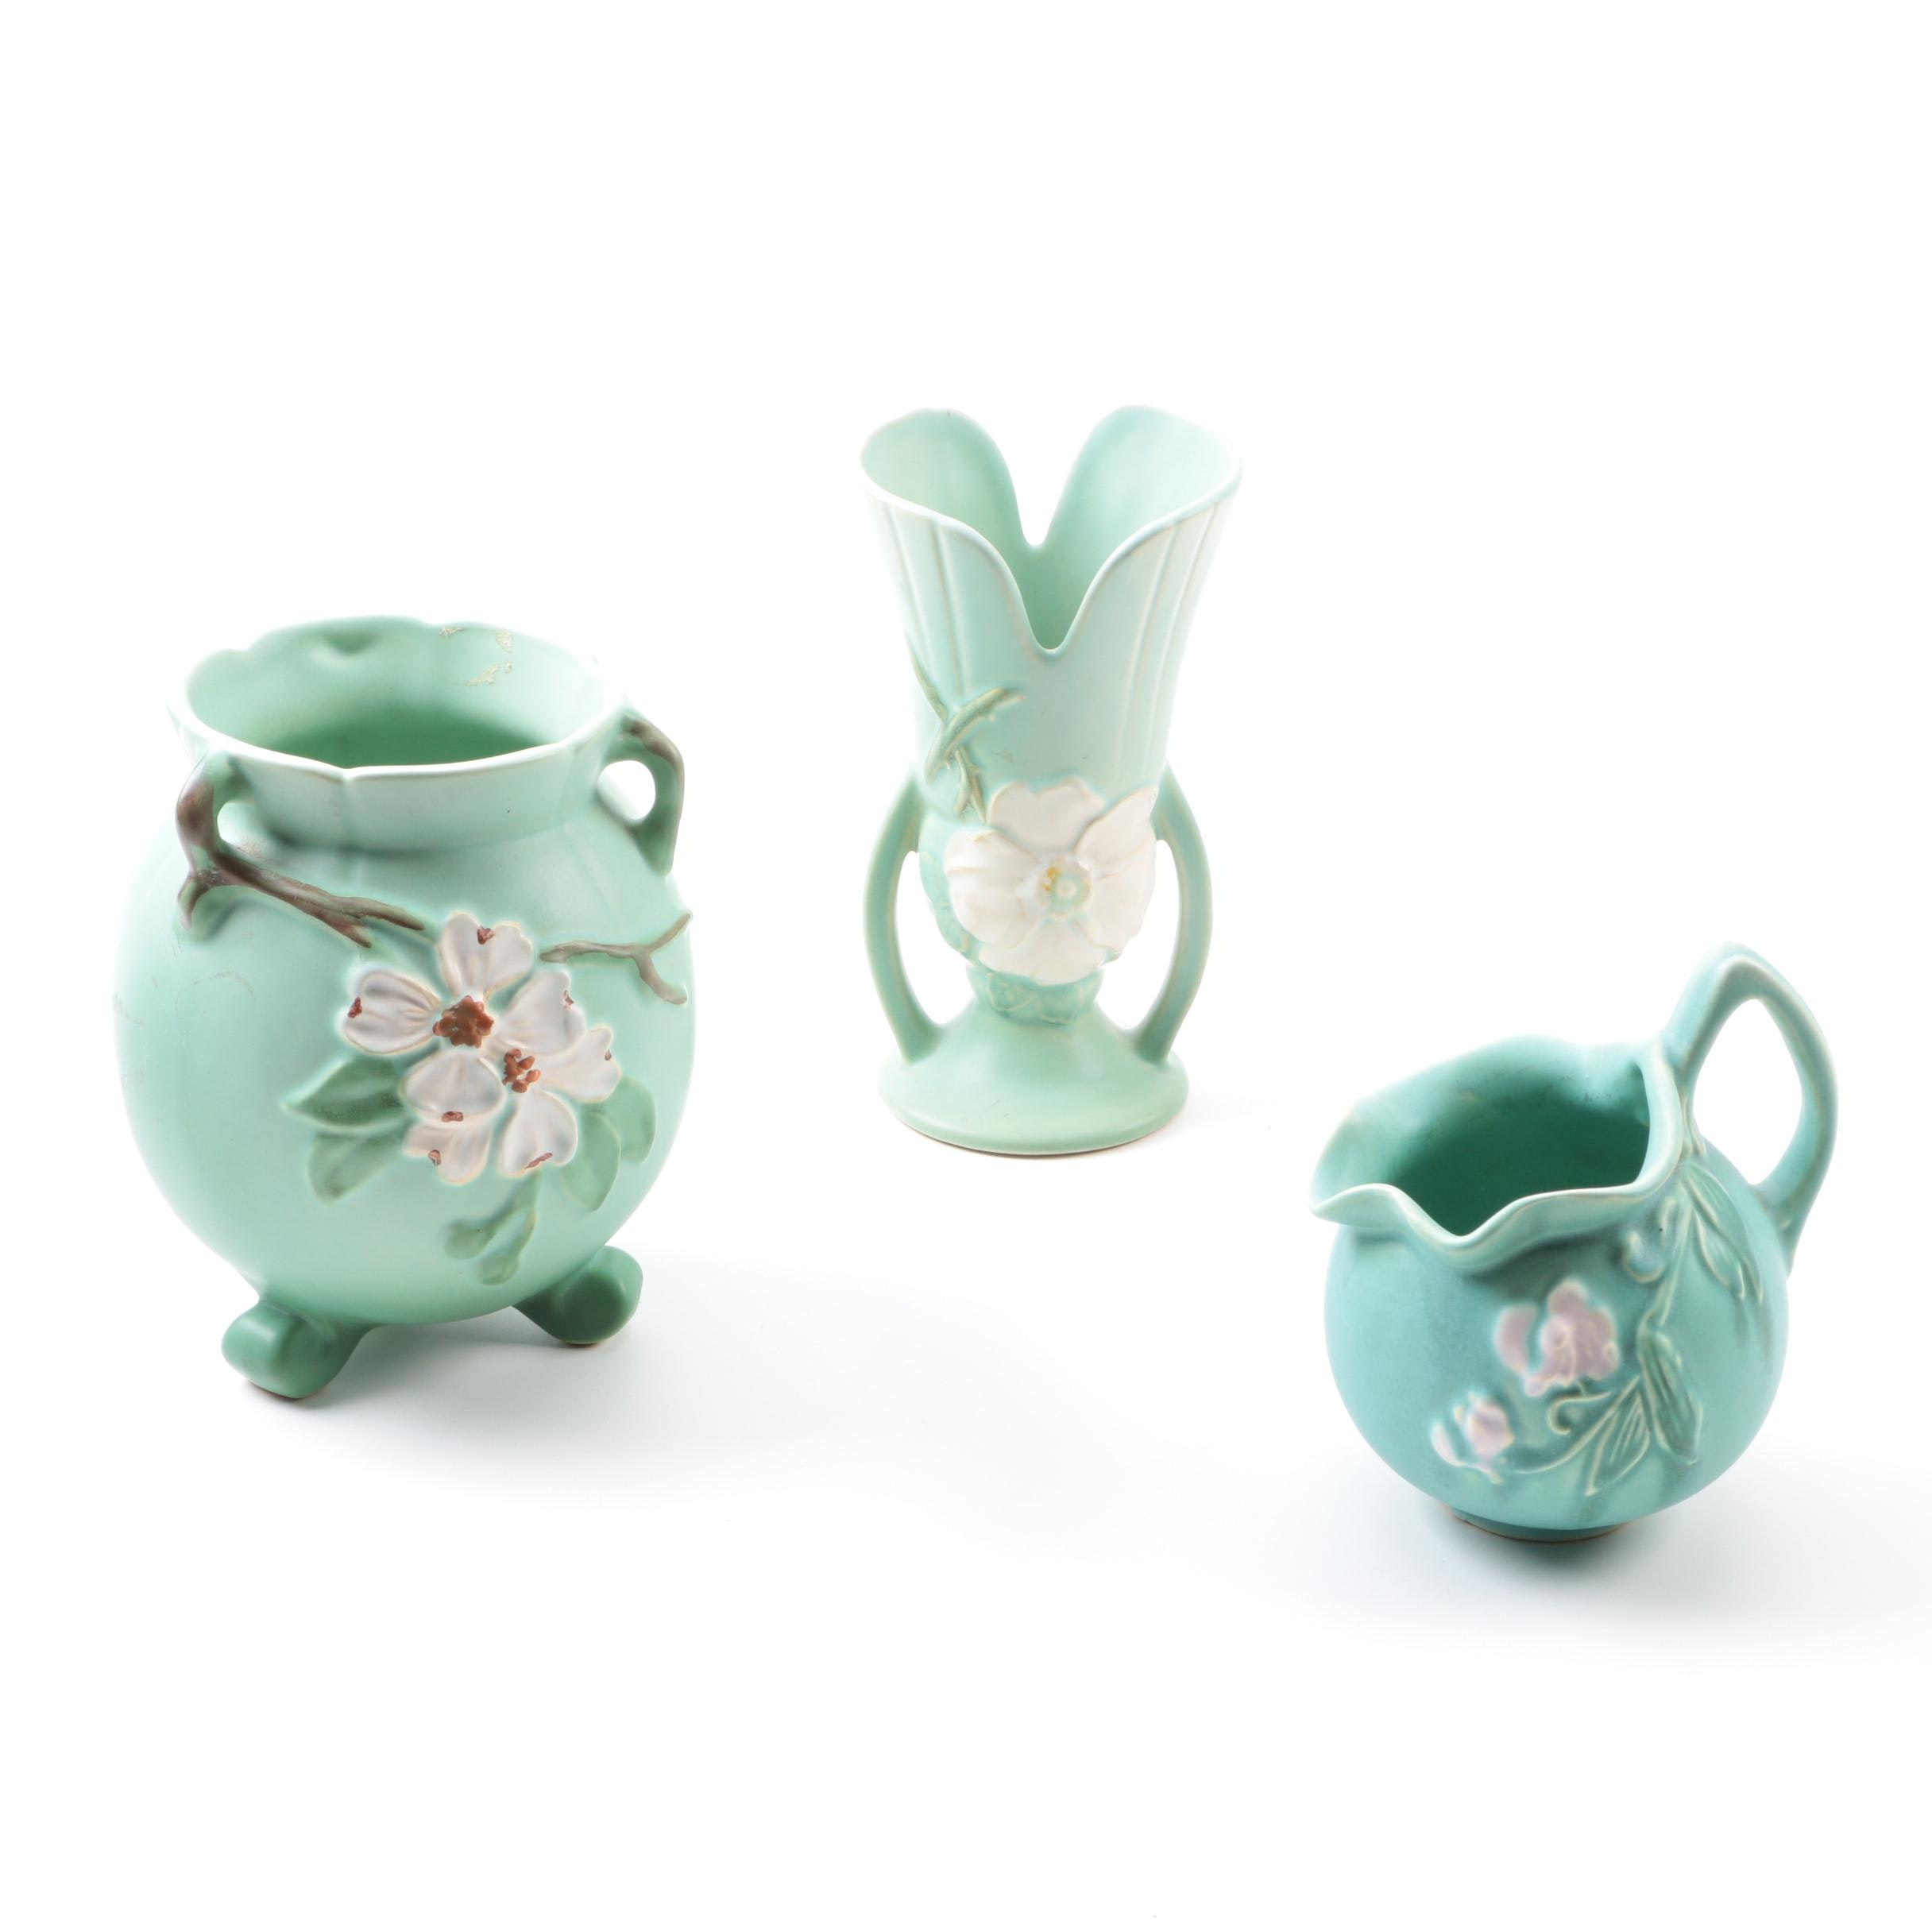 Weller Pottery Vases and Pitcher